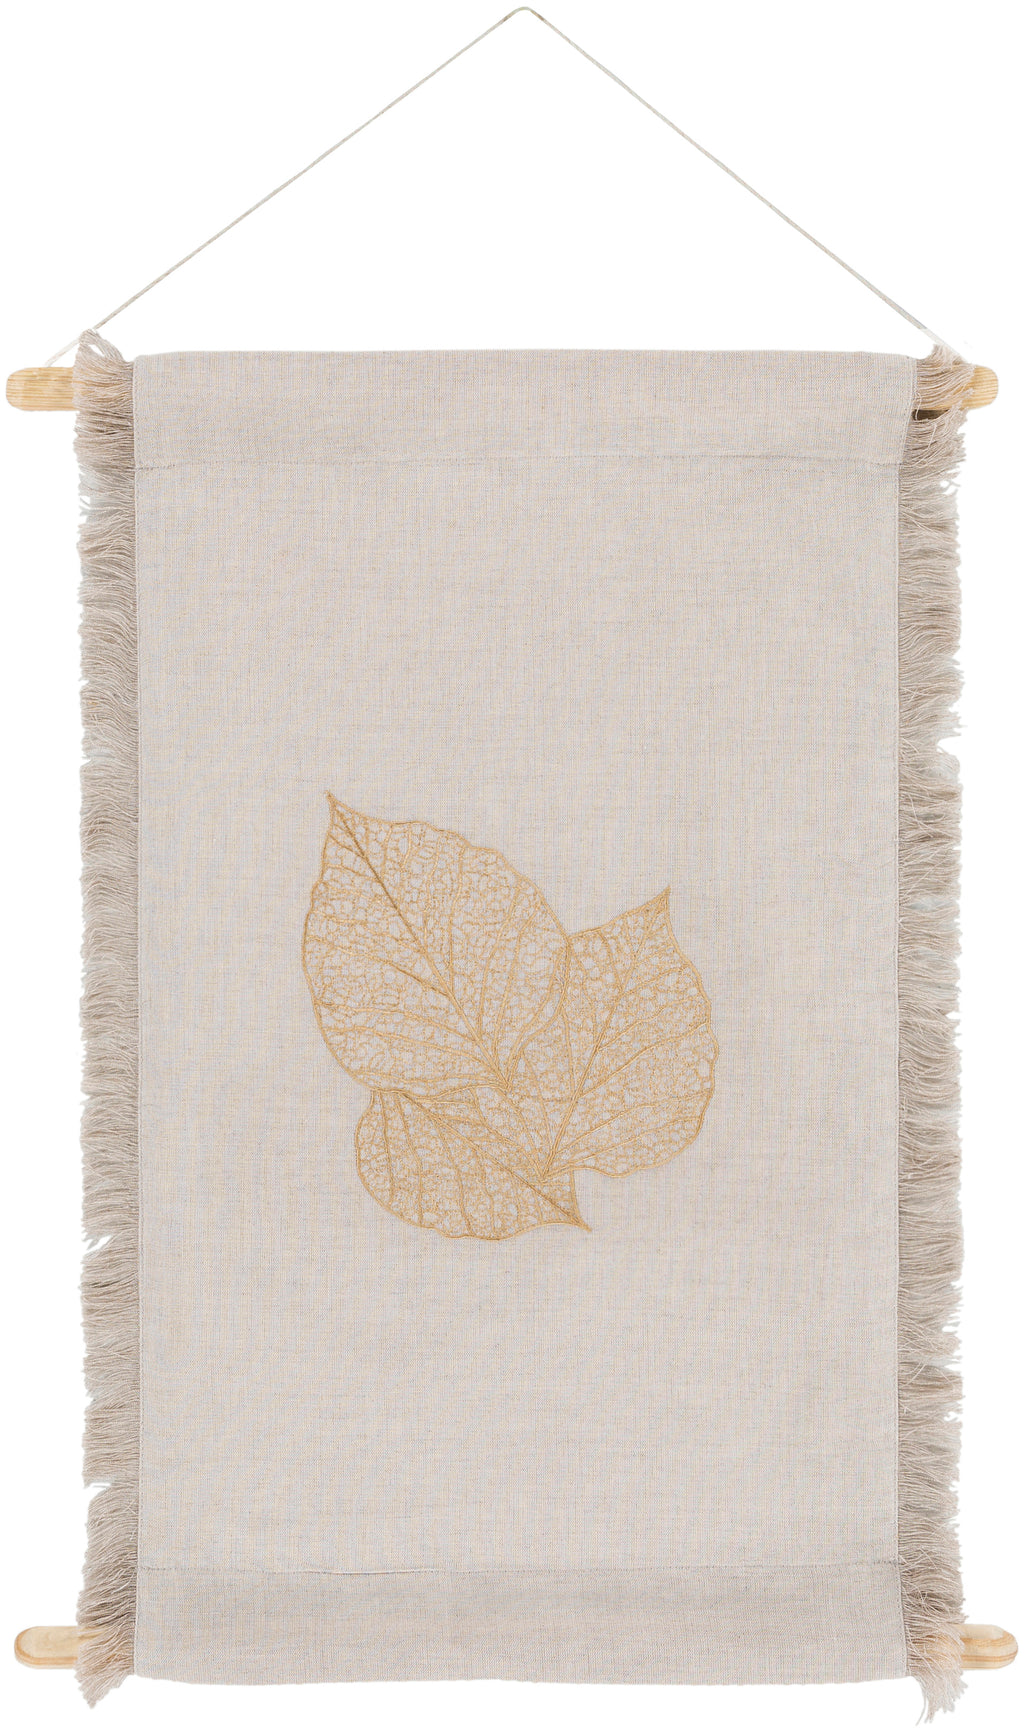 Embodying time-honored designs that have been revered for generations, the Leaf Collection redefines vintage charm from room to room within any home décor. The meticulously woven construction of these pieces boasts durability and will provide natural charm into your decor space. Made in India. For optimal product care, wipe clean with a dry cloth. Manufacturers 30 Day Limited Warranty.